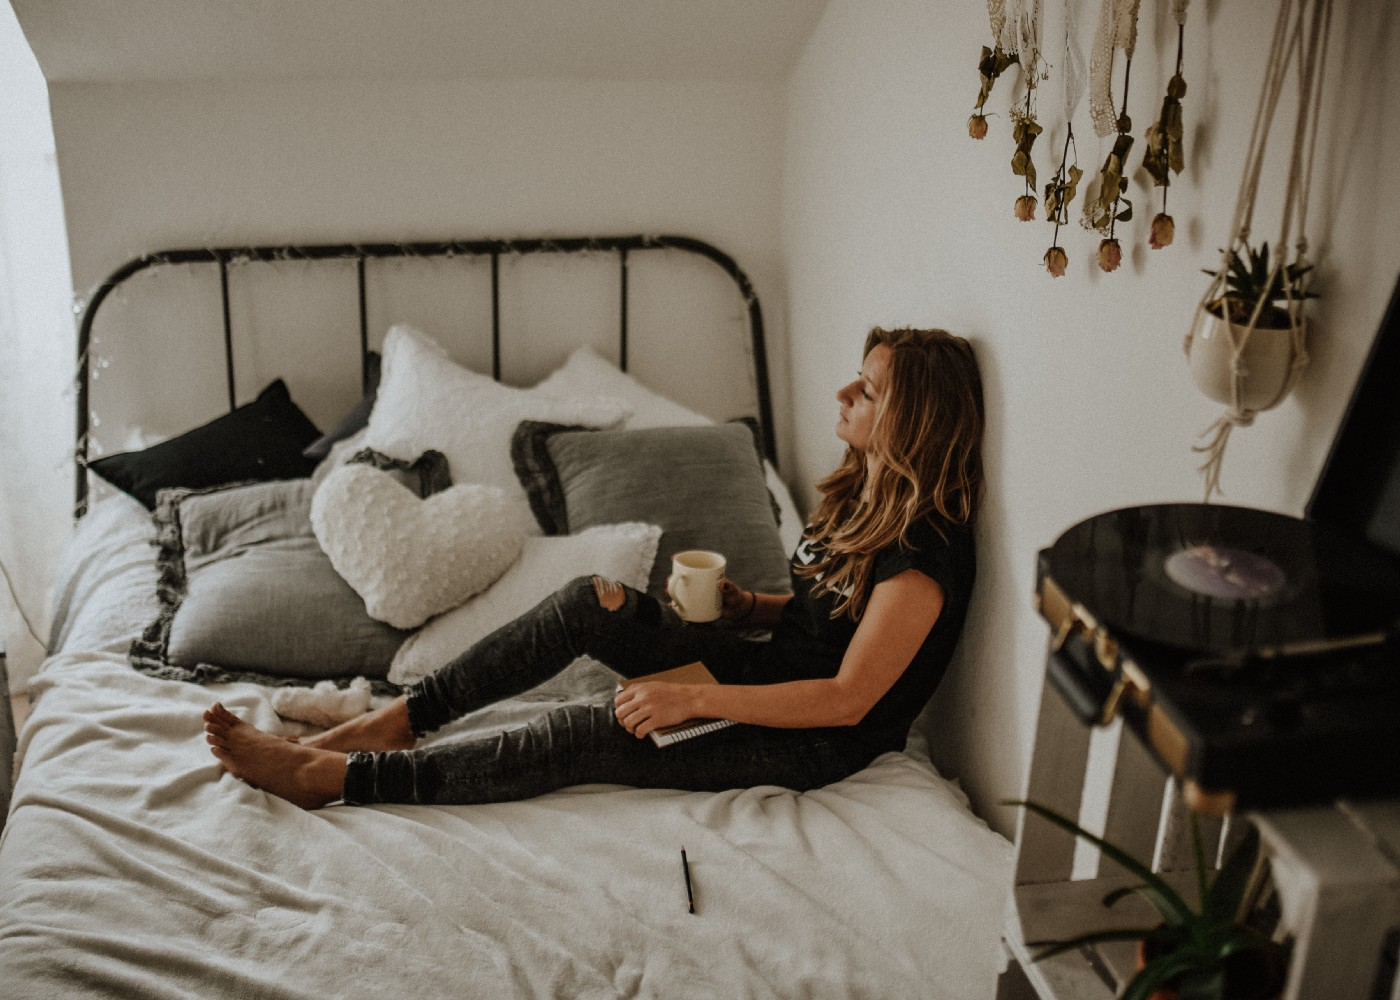 A woman practices self-care and relaxes on her bed.